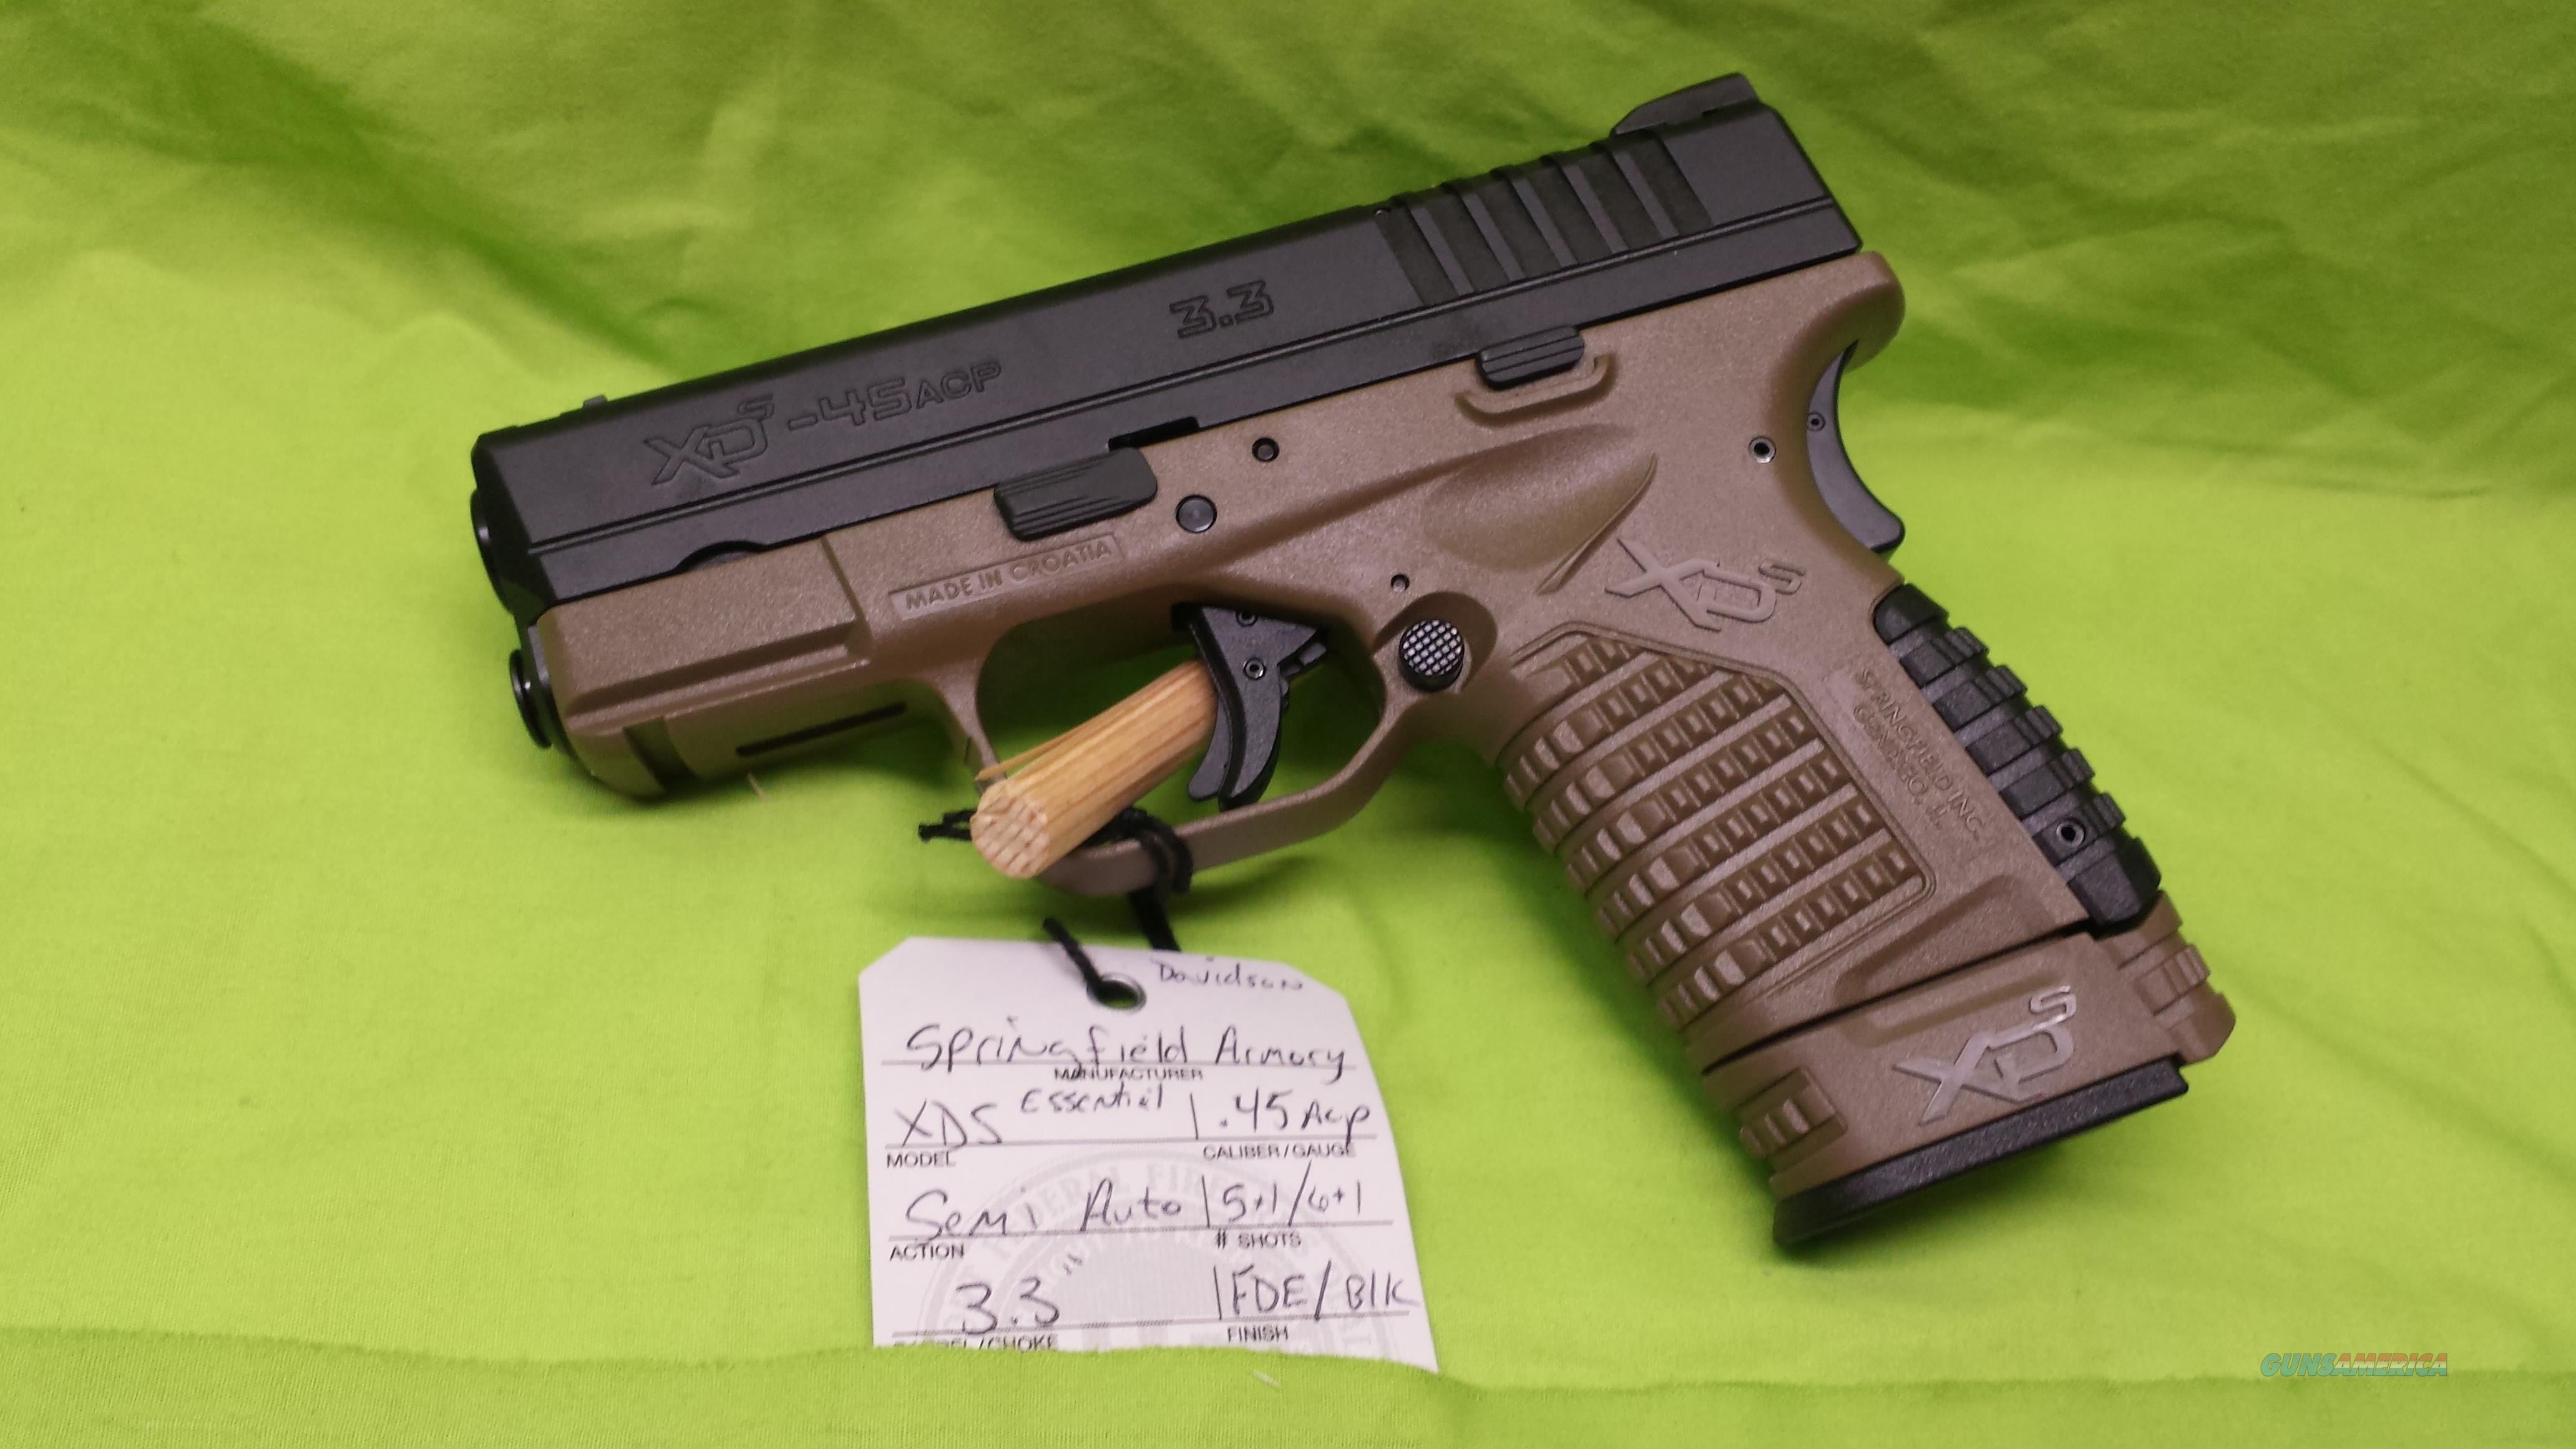 SPRINGFIELD XDS 45ACP 45 3.3 FDE 5RD 6RD ESS  Guns > Pistols > Springfield Armory Pistols > XD-S